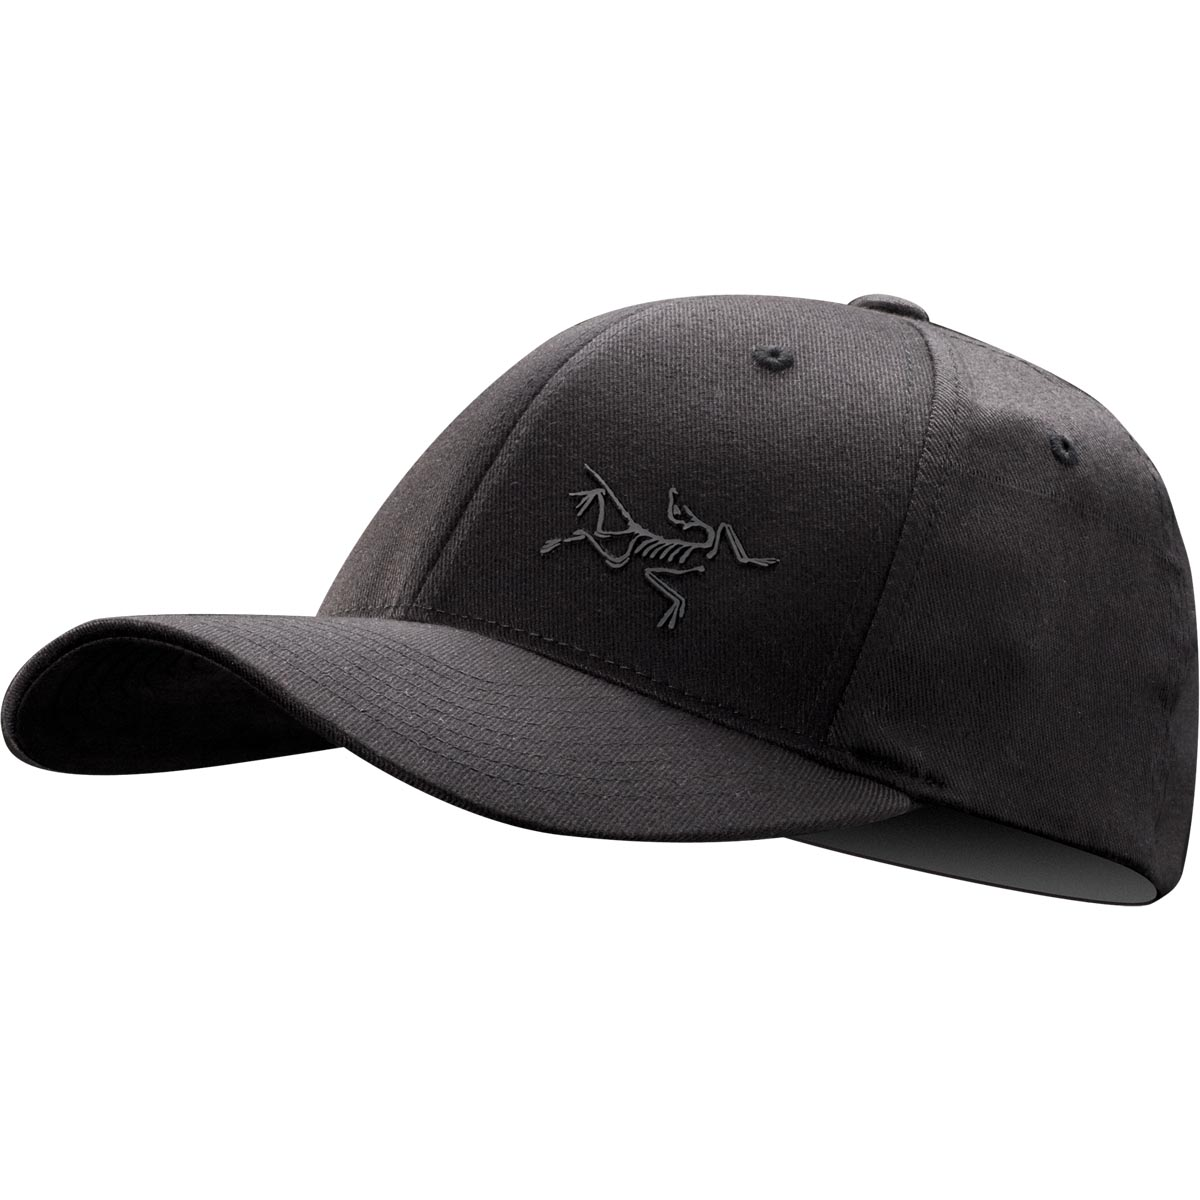 Arcteryx Men's Bird Cap